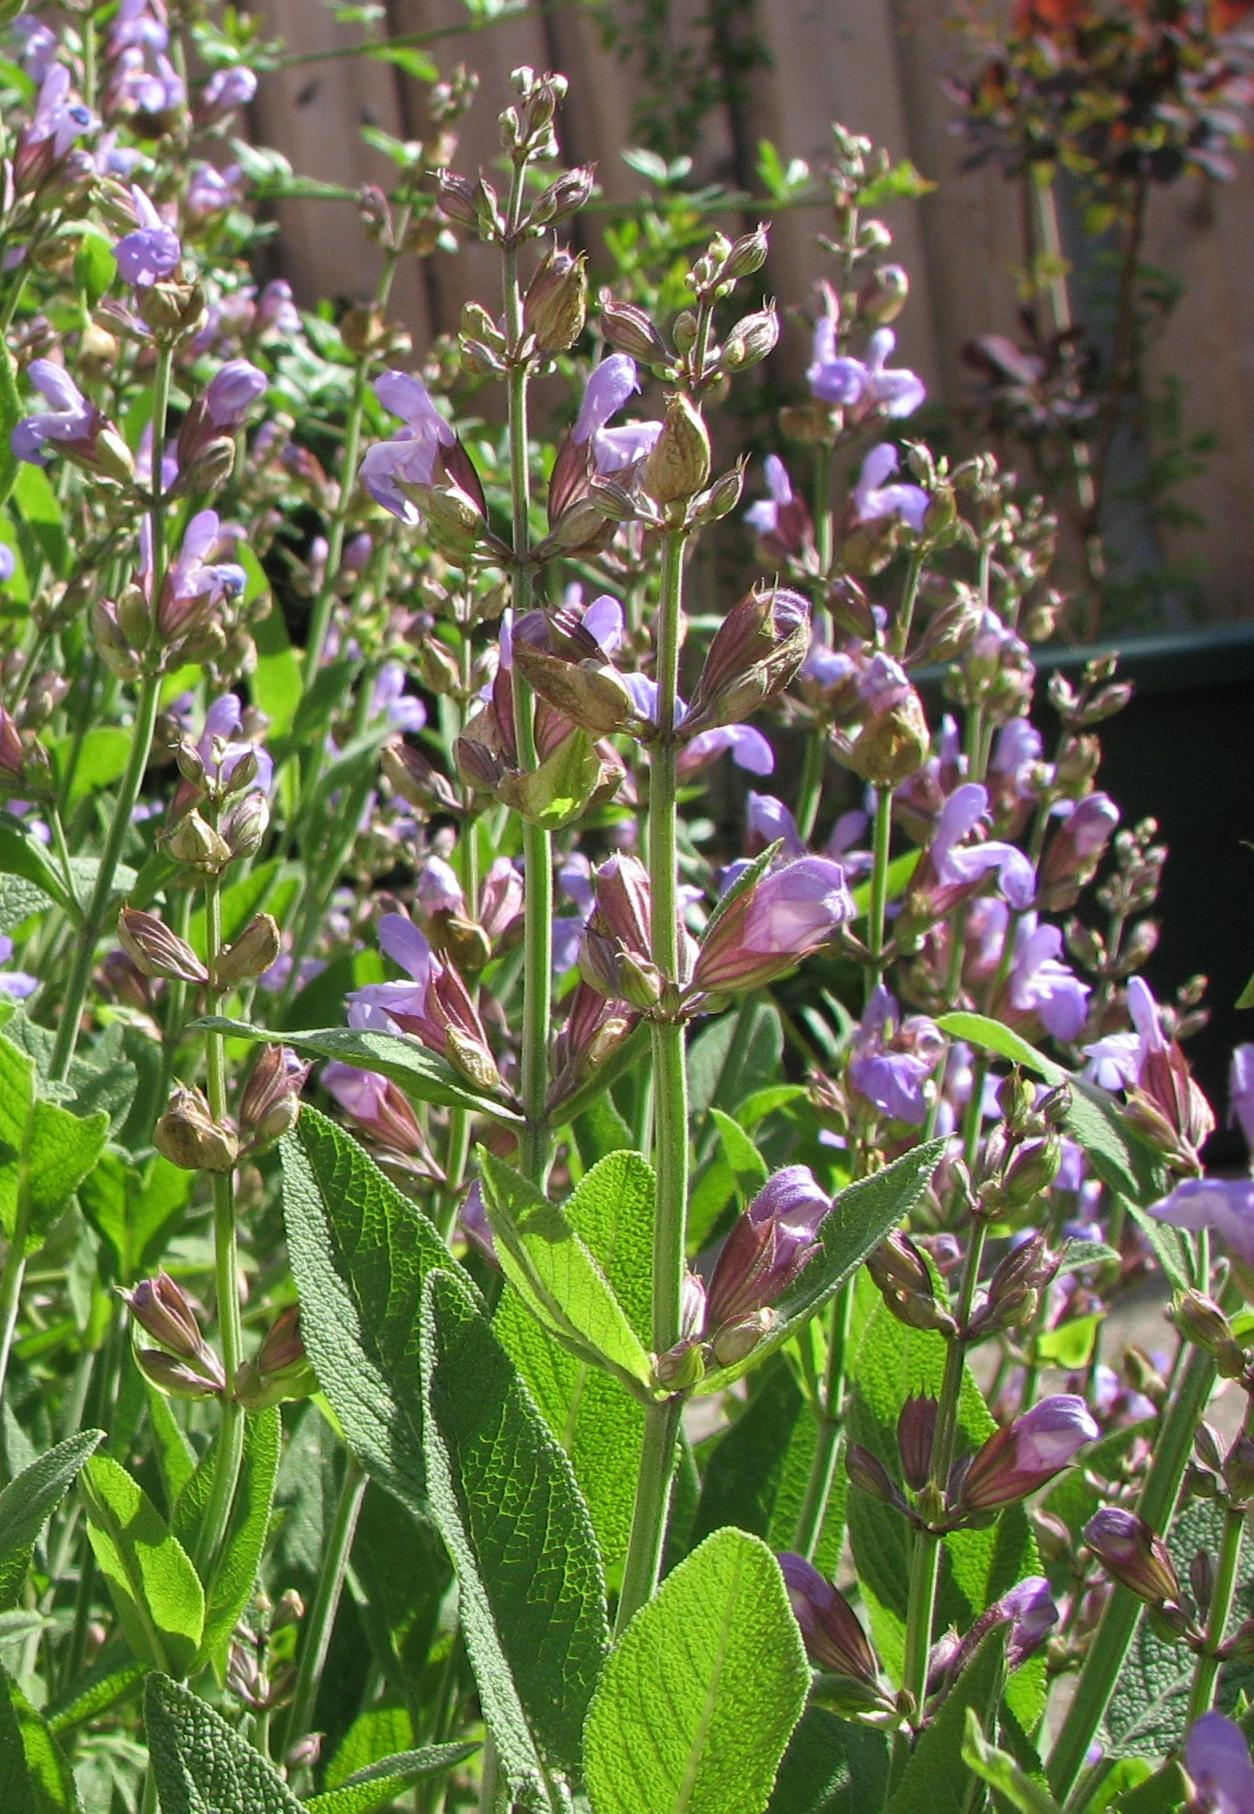 Salvia_officinalis.jpg